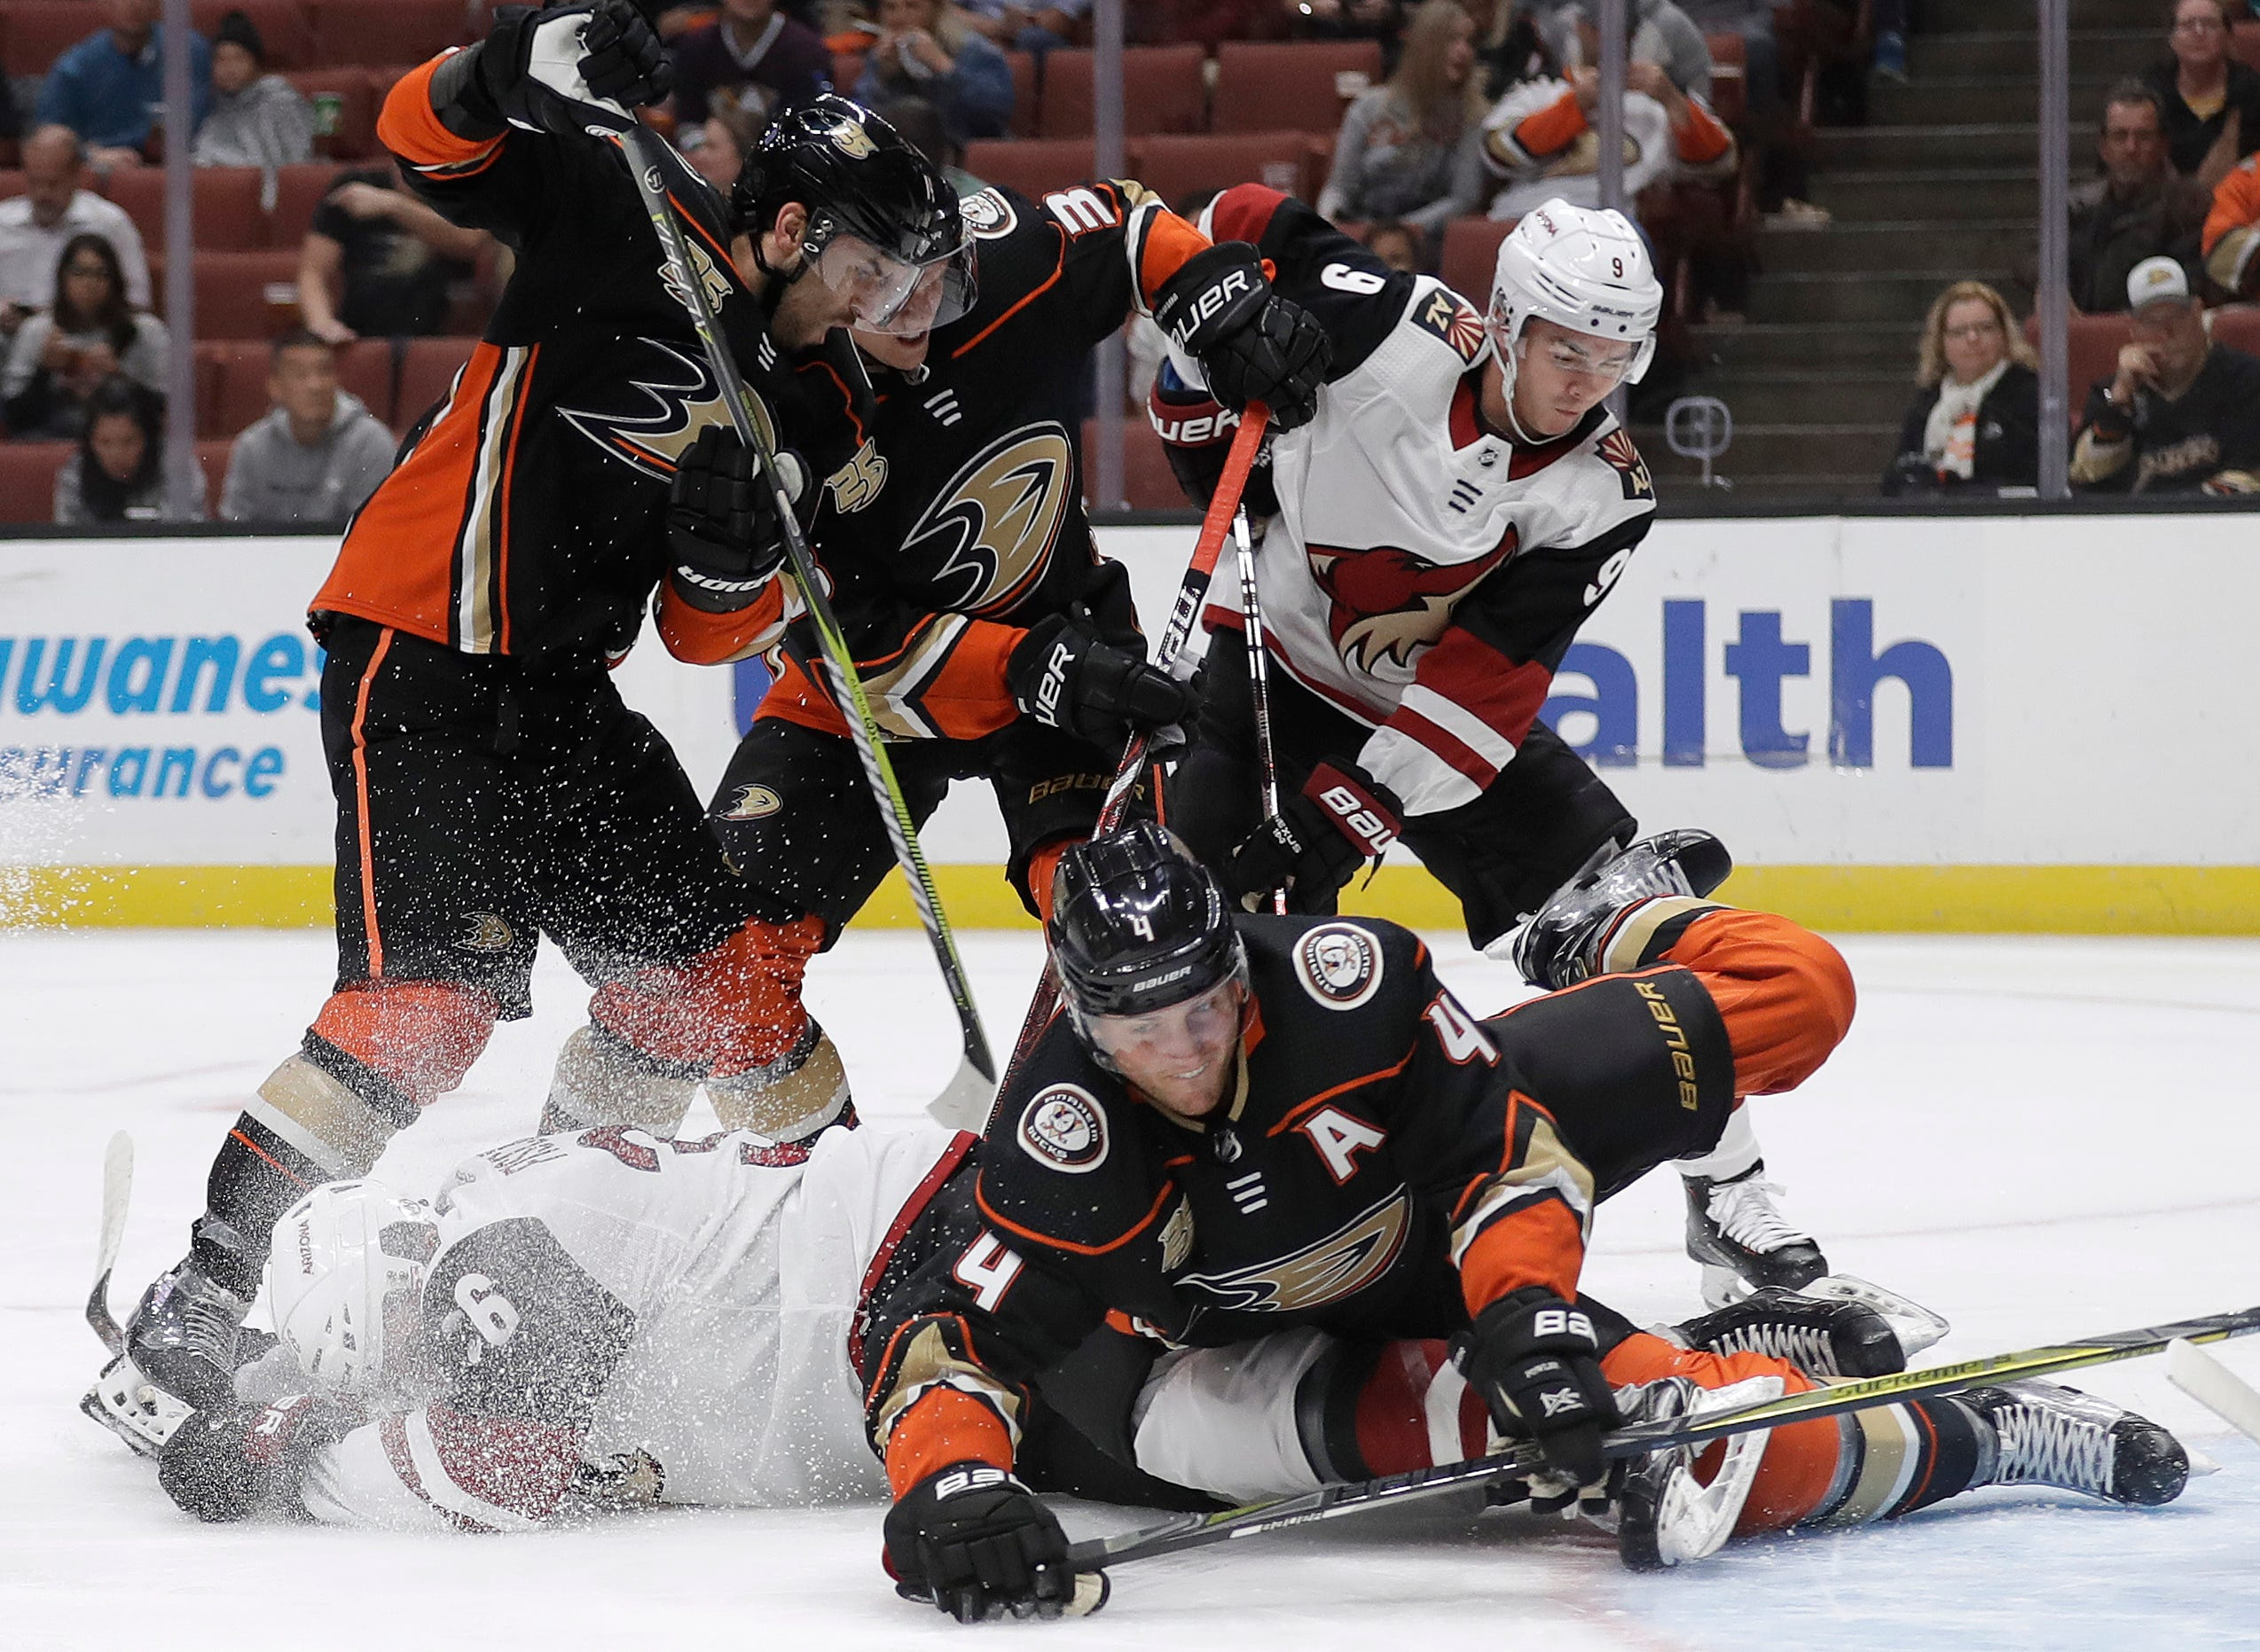 Arizona gets 1st win, defeats Anaheim in shootout